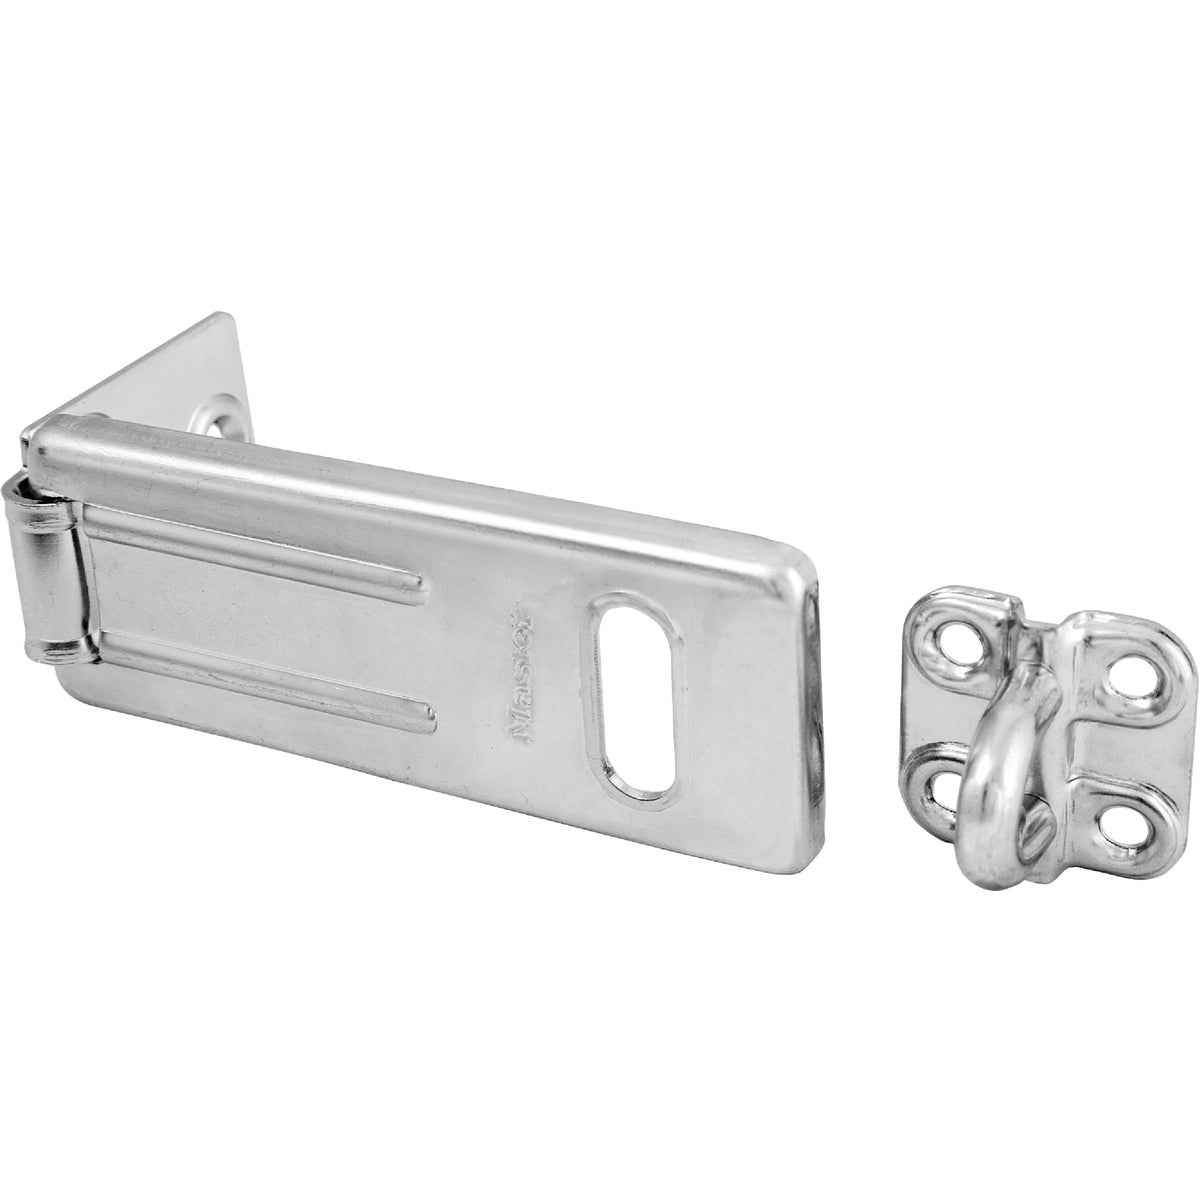 "3-1/2"" SAFETY HASP - 703D by Master Lock Company"